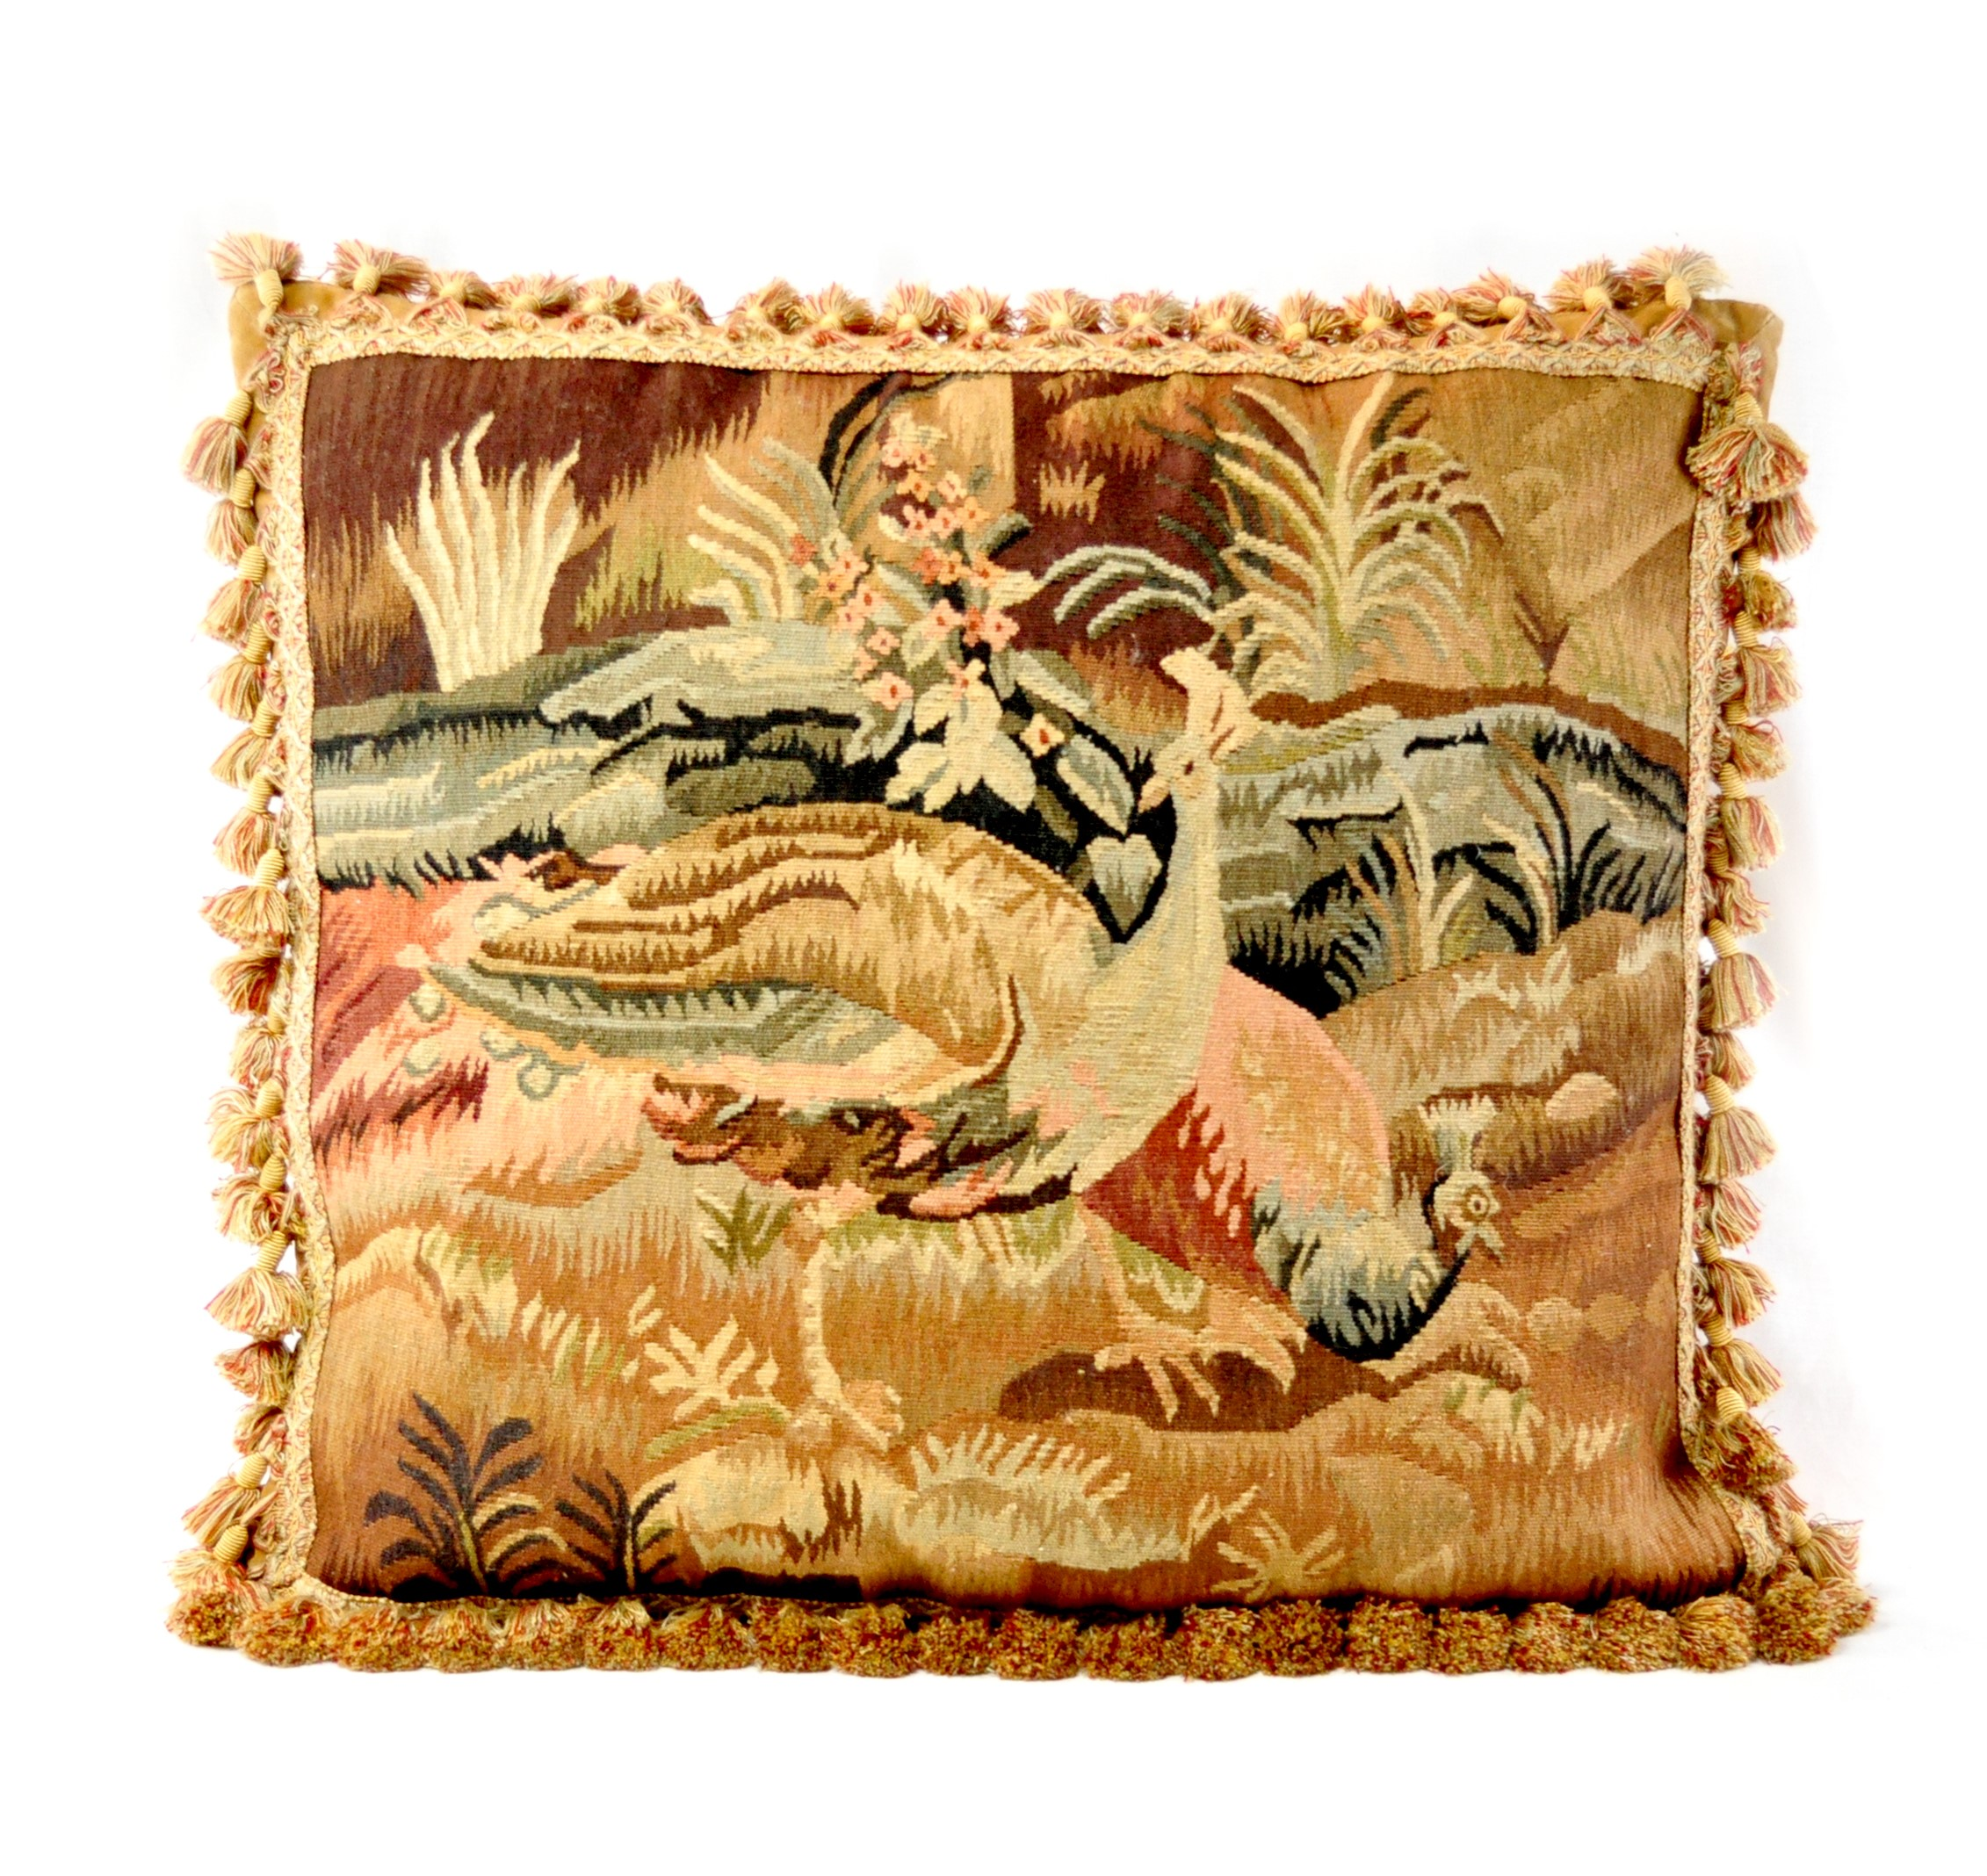 22″x24″ Handmade Peacock French Gobelins Tapestry Weave Wool Aubusson Cushion Cover Pillow Case 12980011